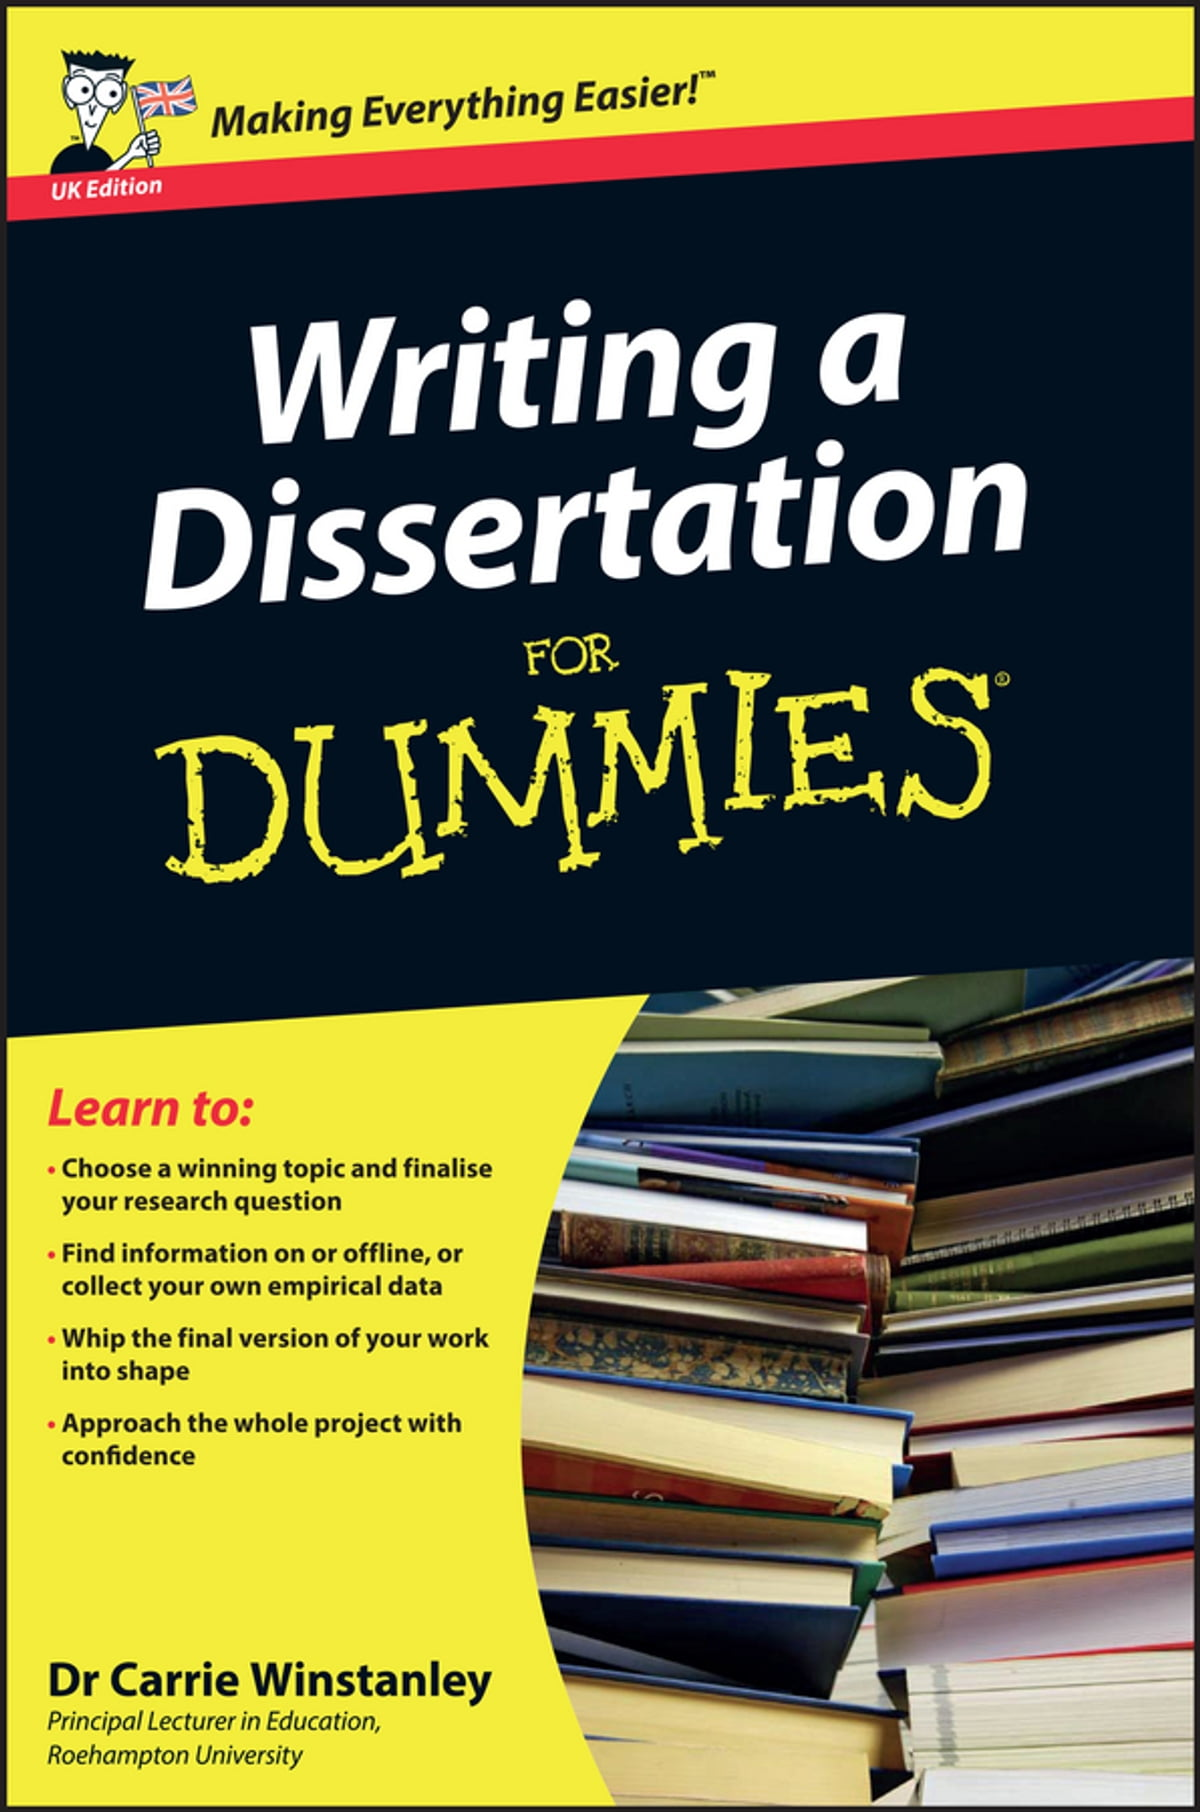 How To Write Essay Proposal  Interesting Essay Topics For High School Students also Good High School Essay Topics Writing A Dissertation For Dummies Ebook By Carrie Winstanley  Rakuten Kobo Narrative Essay Topics For High School